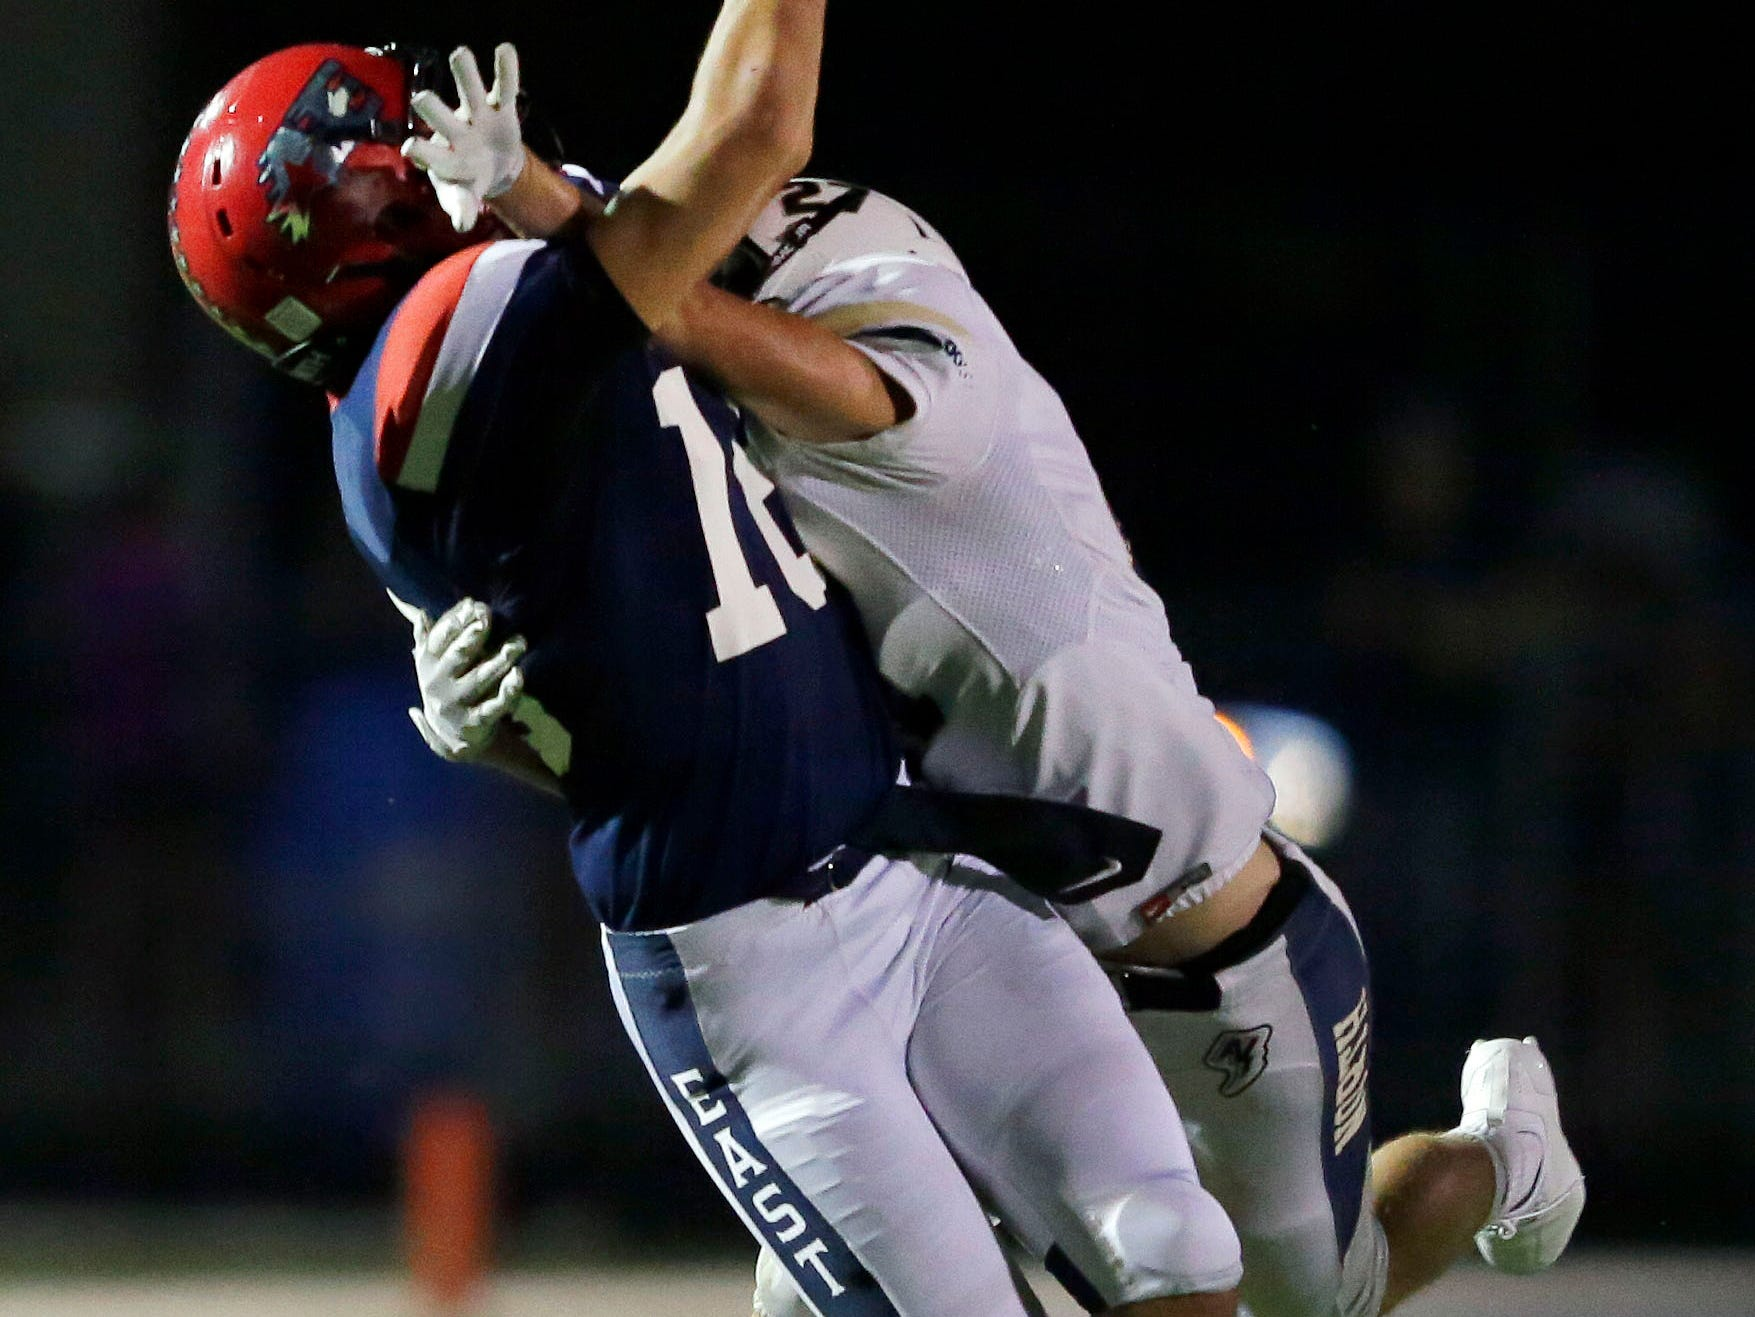 Pass interference is called on Tyler Birling of Appleton North as Spencer Meyer of Appleton East tries for a reception in a Valley Football Association game Friday, September 14, 2018, at Appleton East High School in Appleton, Wis.Ron Page/USA TODAY NETWORK-Wisconsin